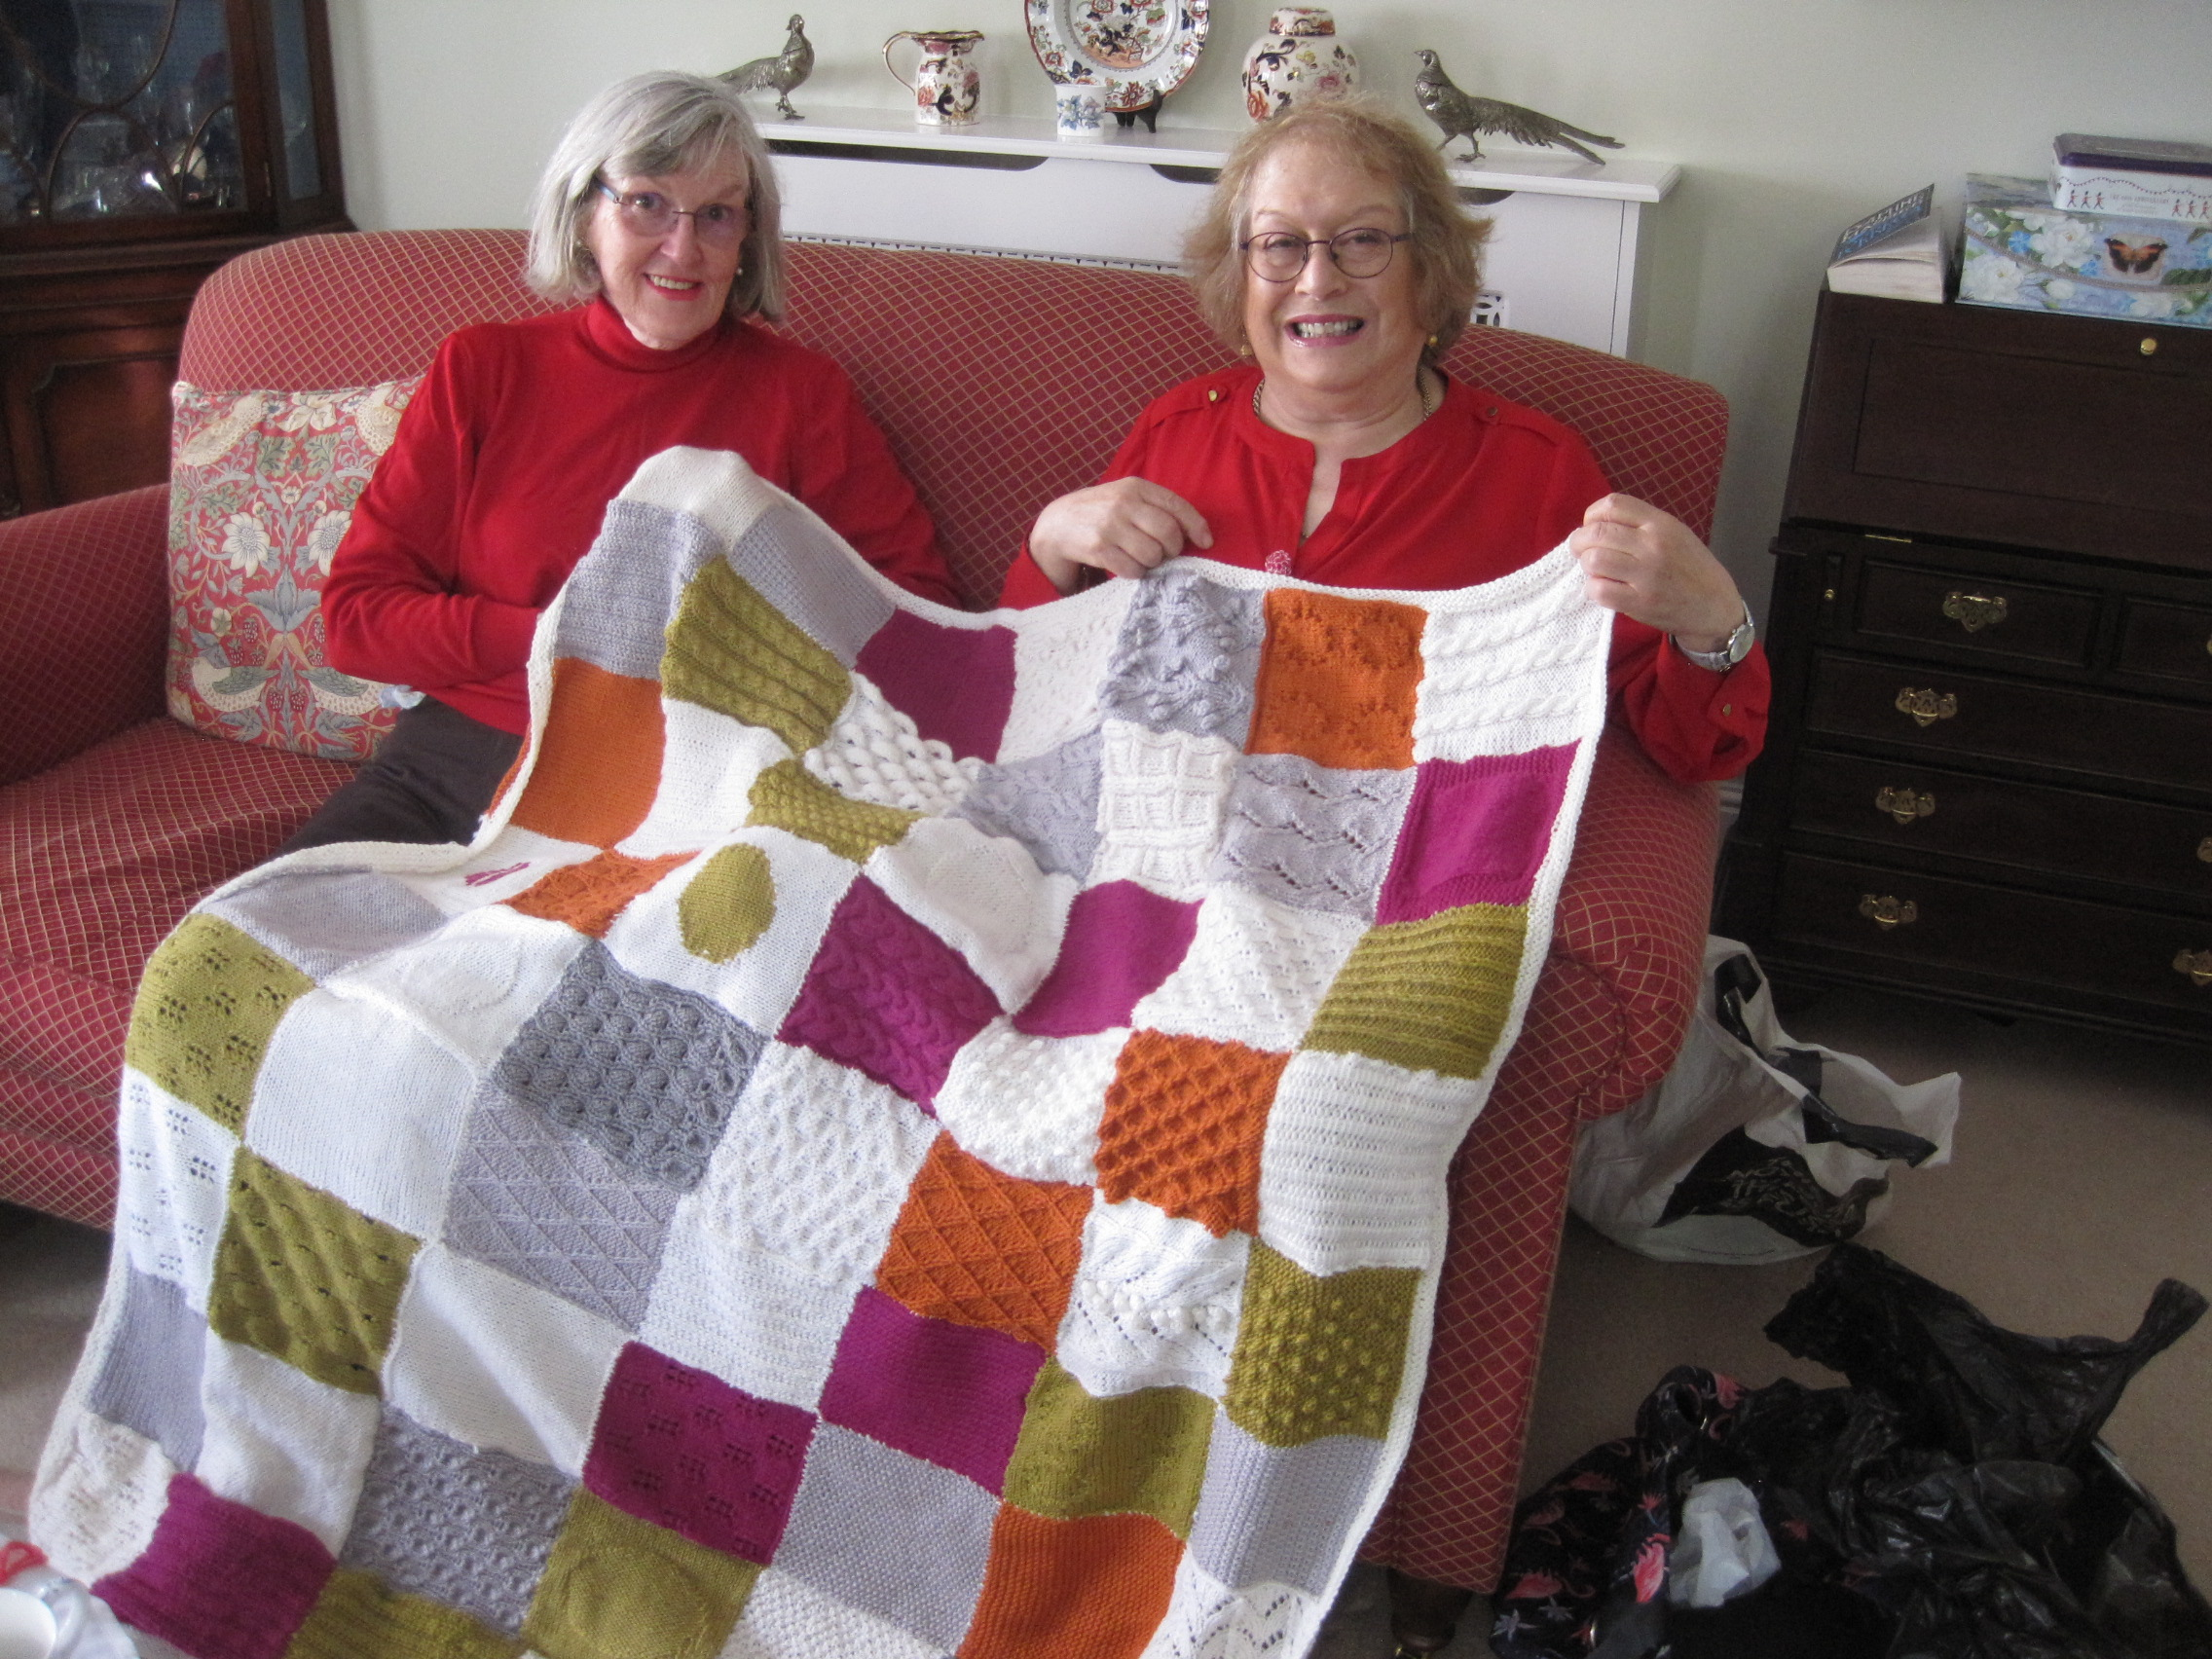 Blanket made by Crafts 1 group